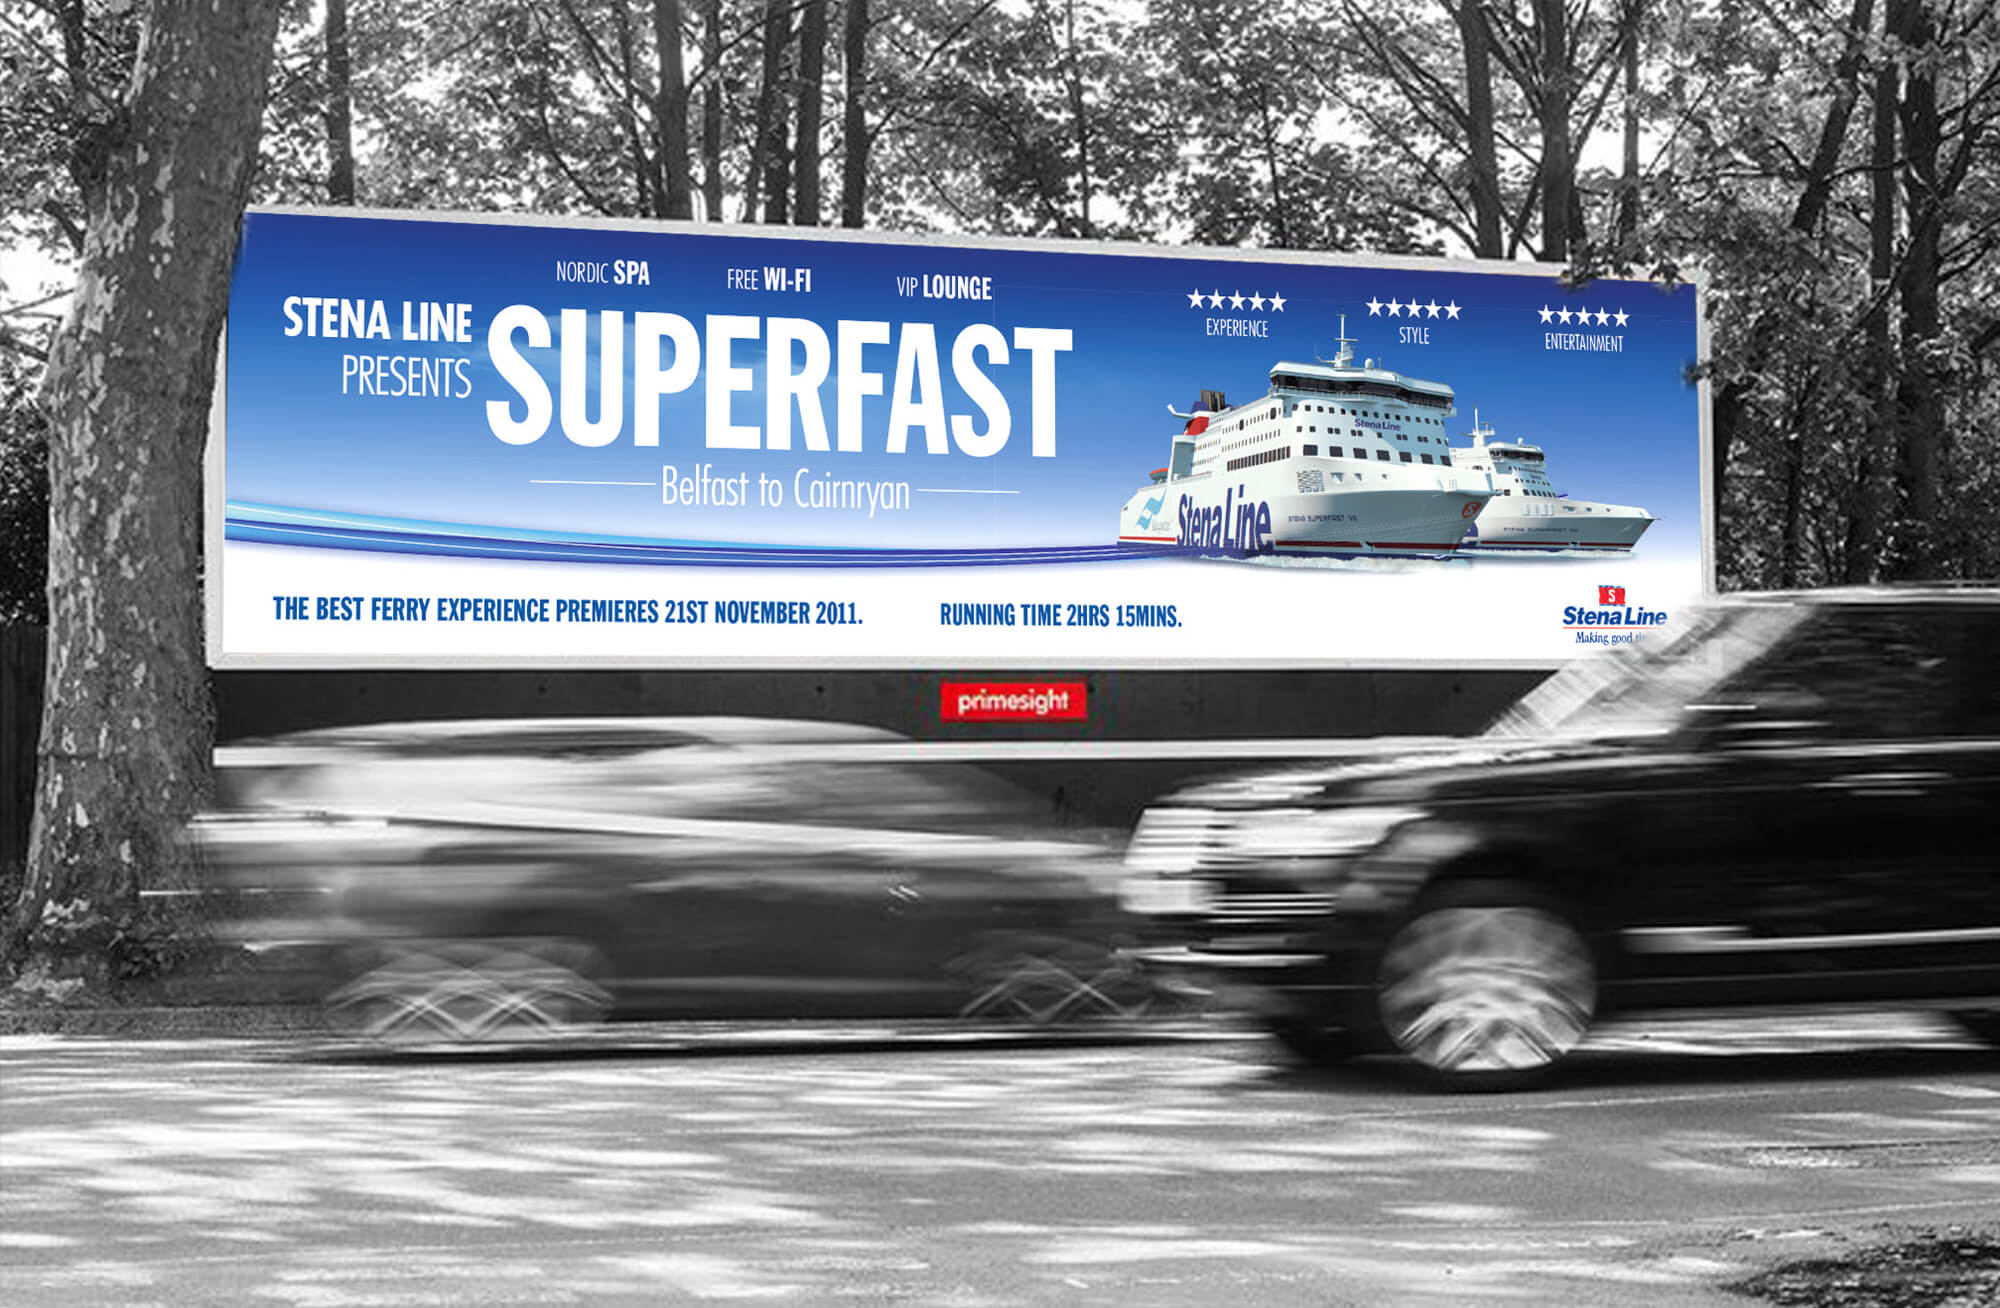 STENA LINE - SUPERFAST LAUNCH